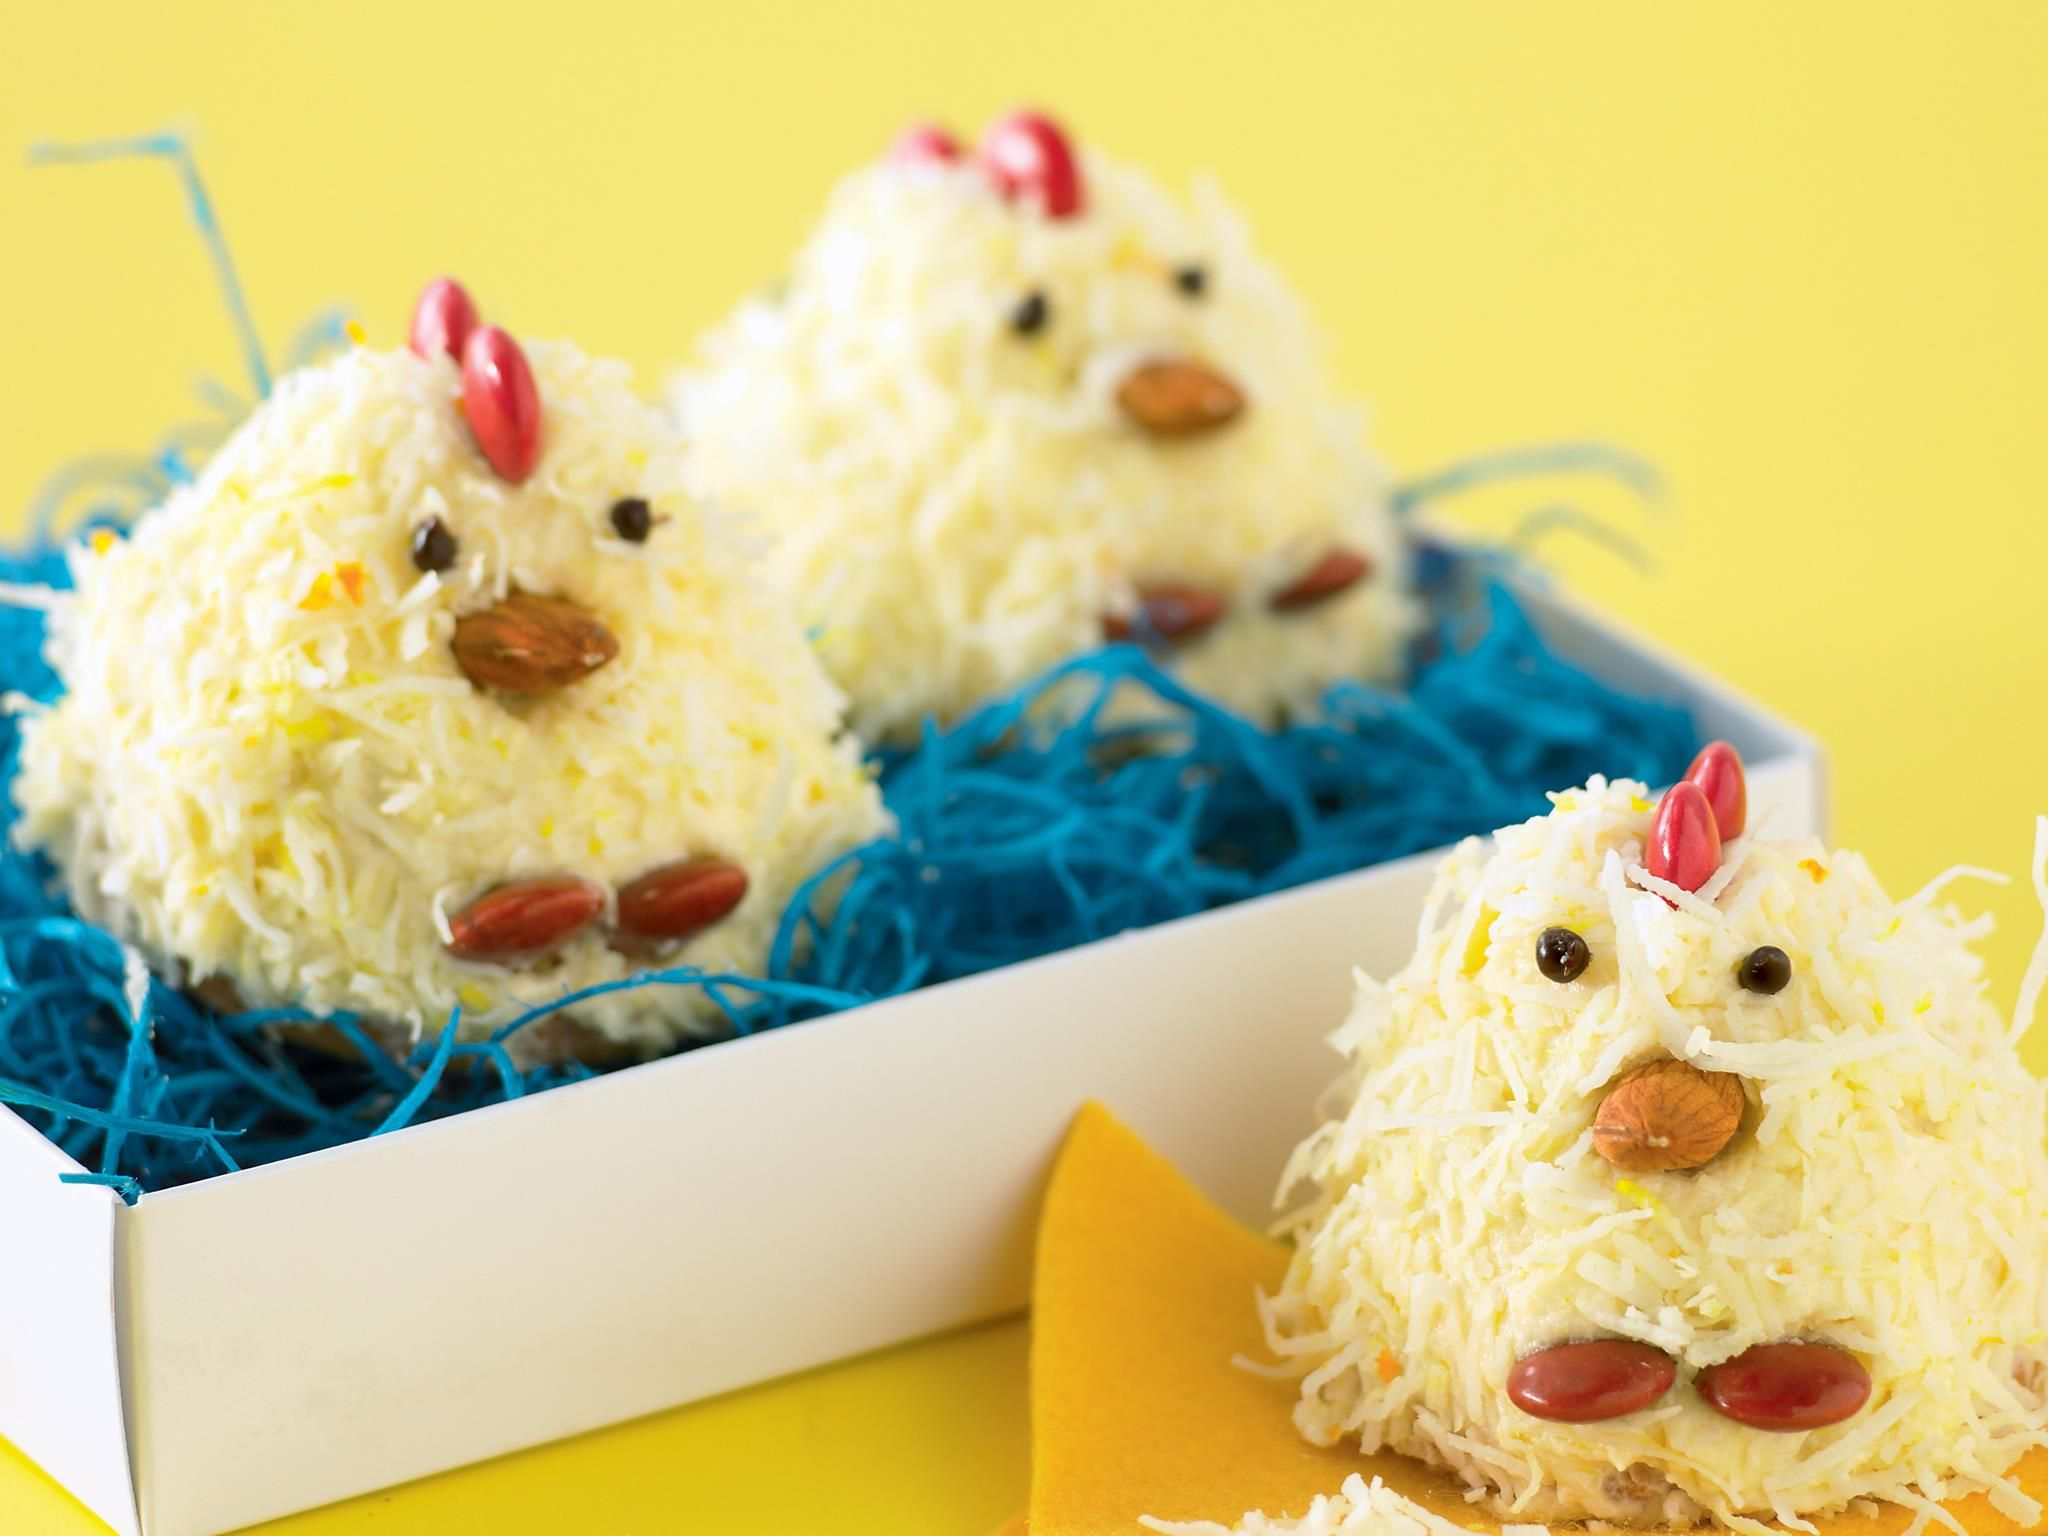 Ramp up the 'awww' factor this Easter with these adorable little Easter chicks from recipes+; simple cupcakes dressed up to look like fluffy little chicks. Cute as and surprisingly easy.